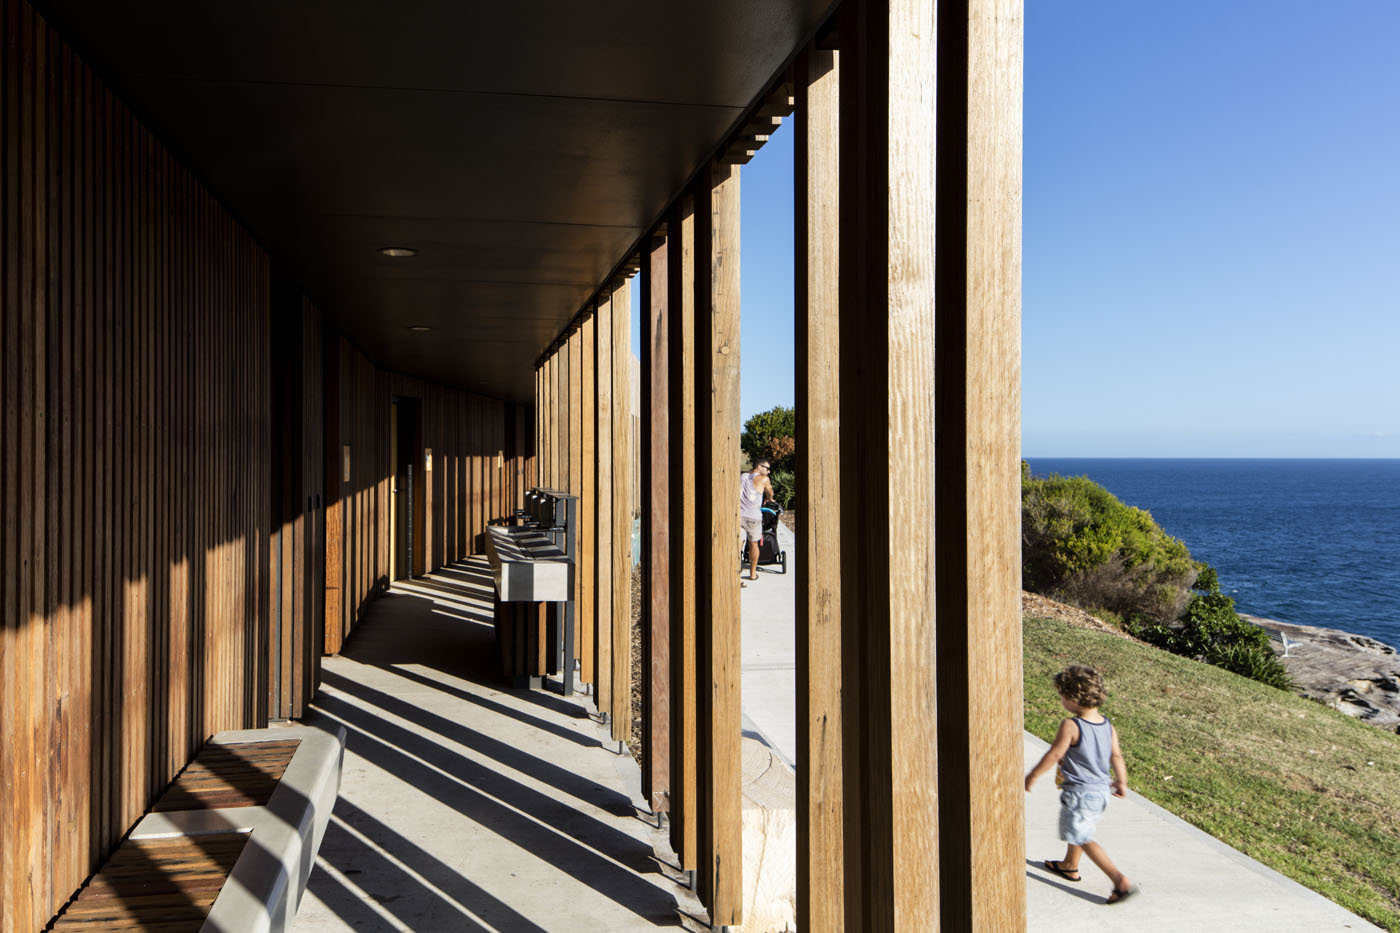 Marks Park Amenities by Sam Crawford Architects, sunny view along main walkway